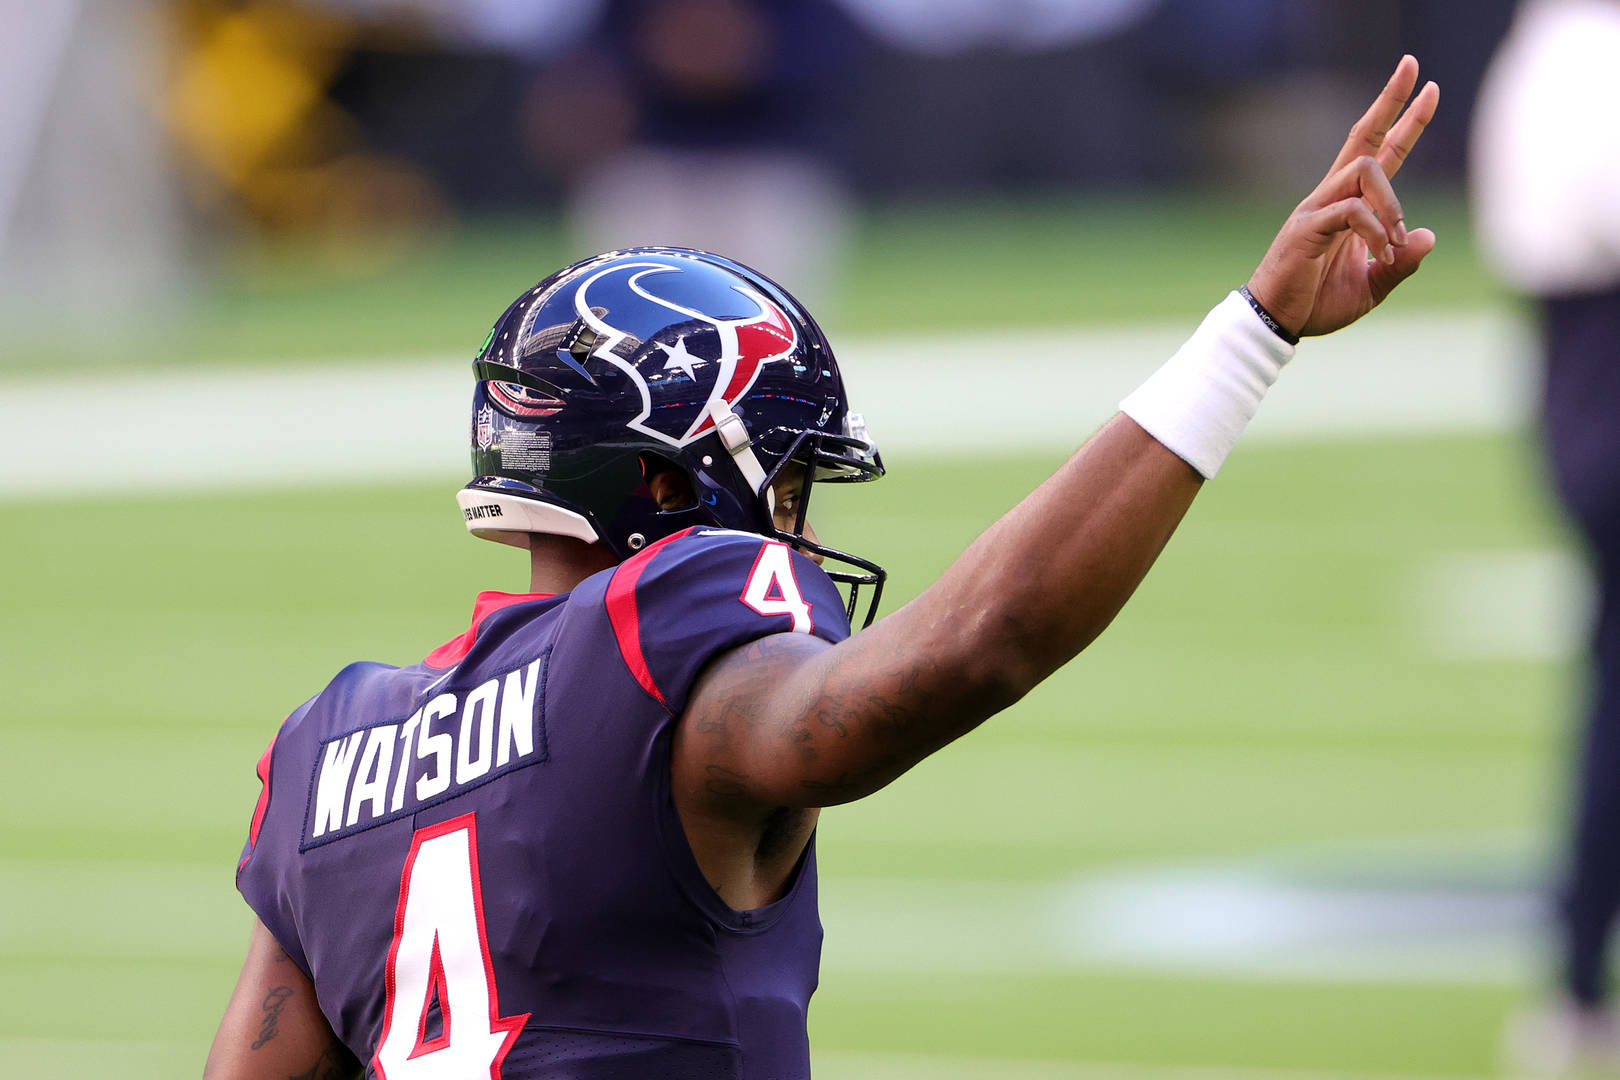 Texans should not trade Deshaun Watson before 2021 NFL Draft